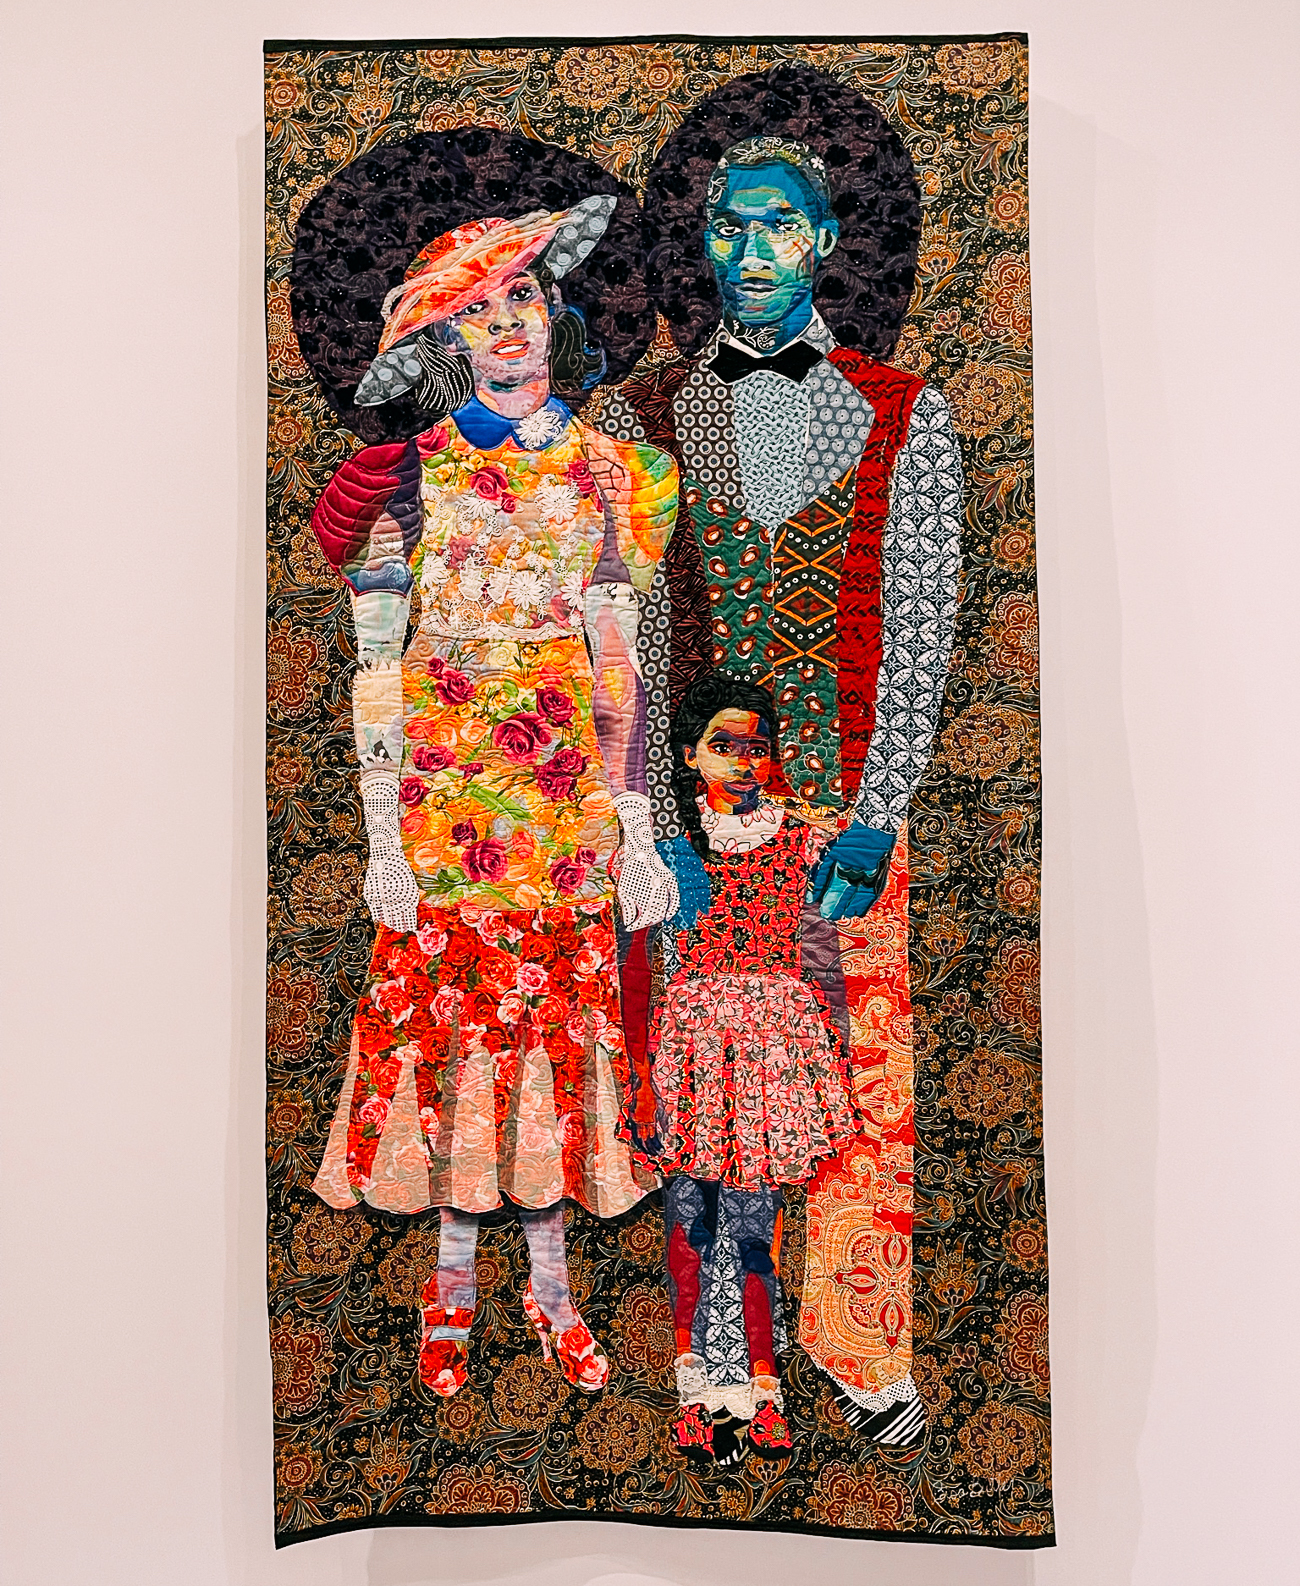 Bisa Butler Quilt Portraits on display at Art Institute of Chicago